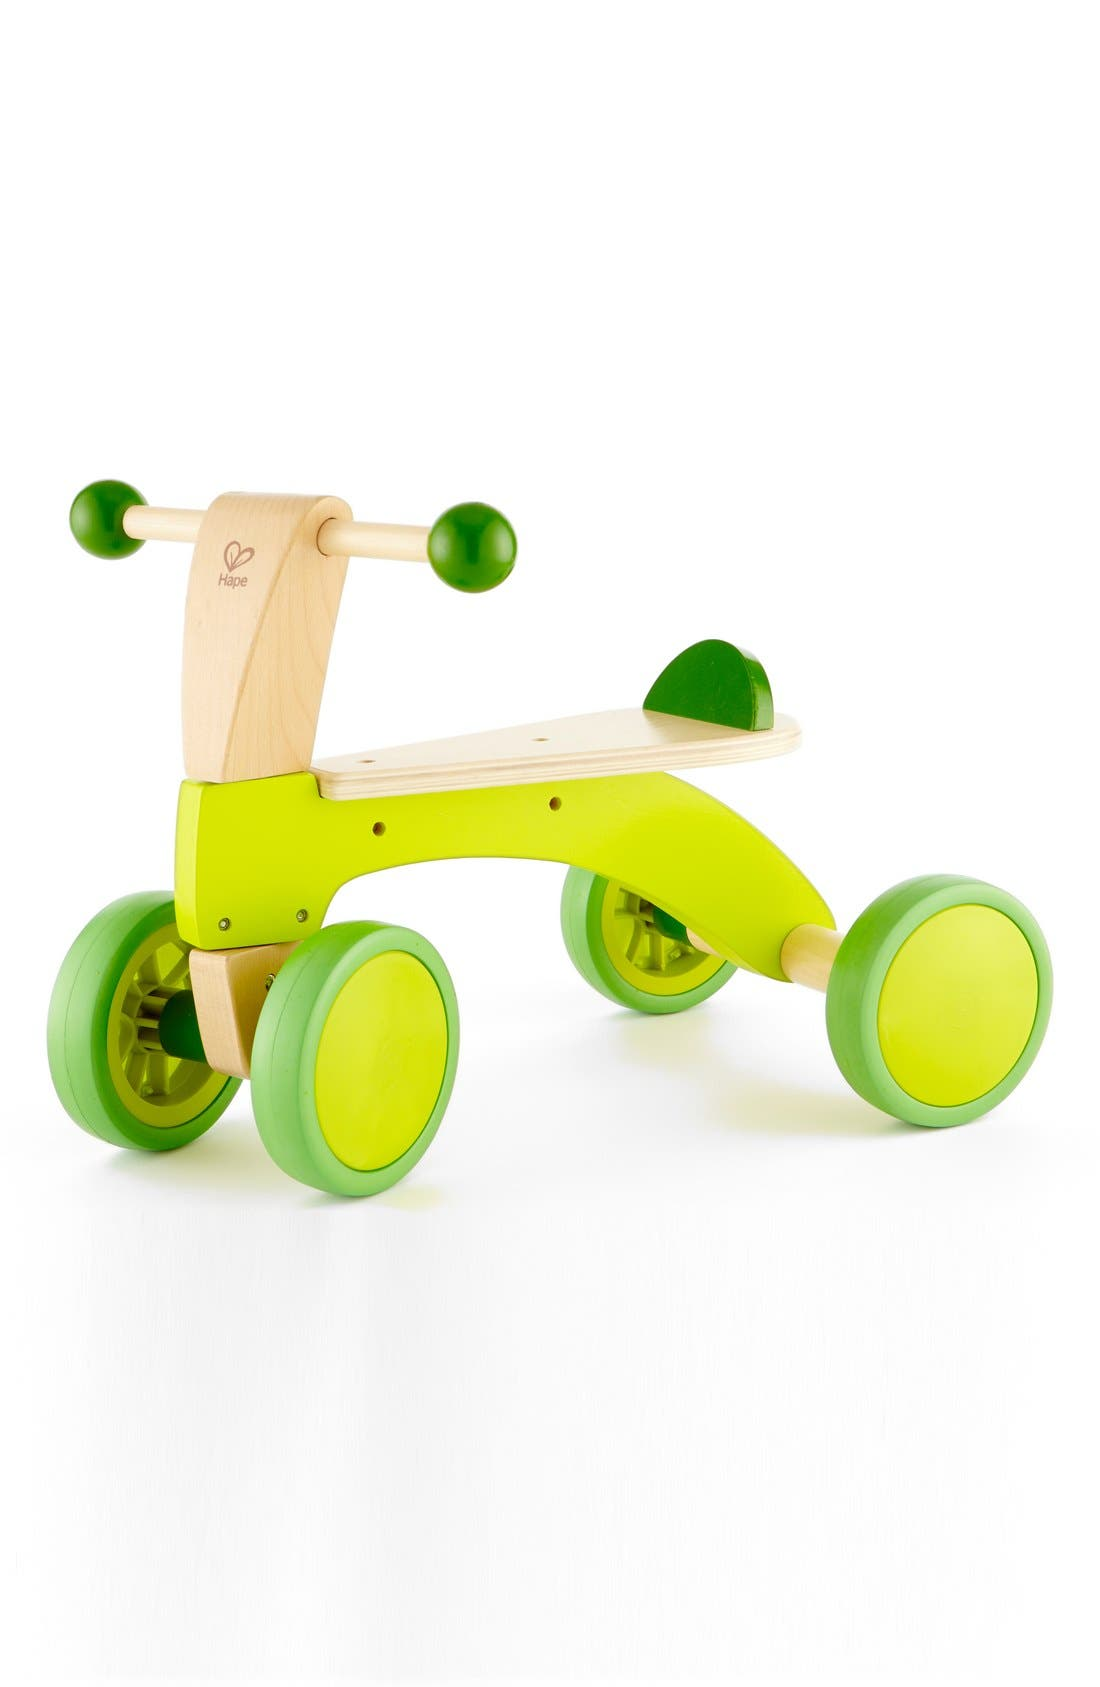 Hape 'Scoot-Around' Riding Toy